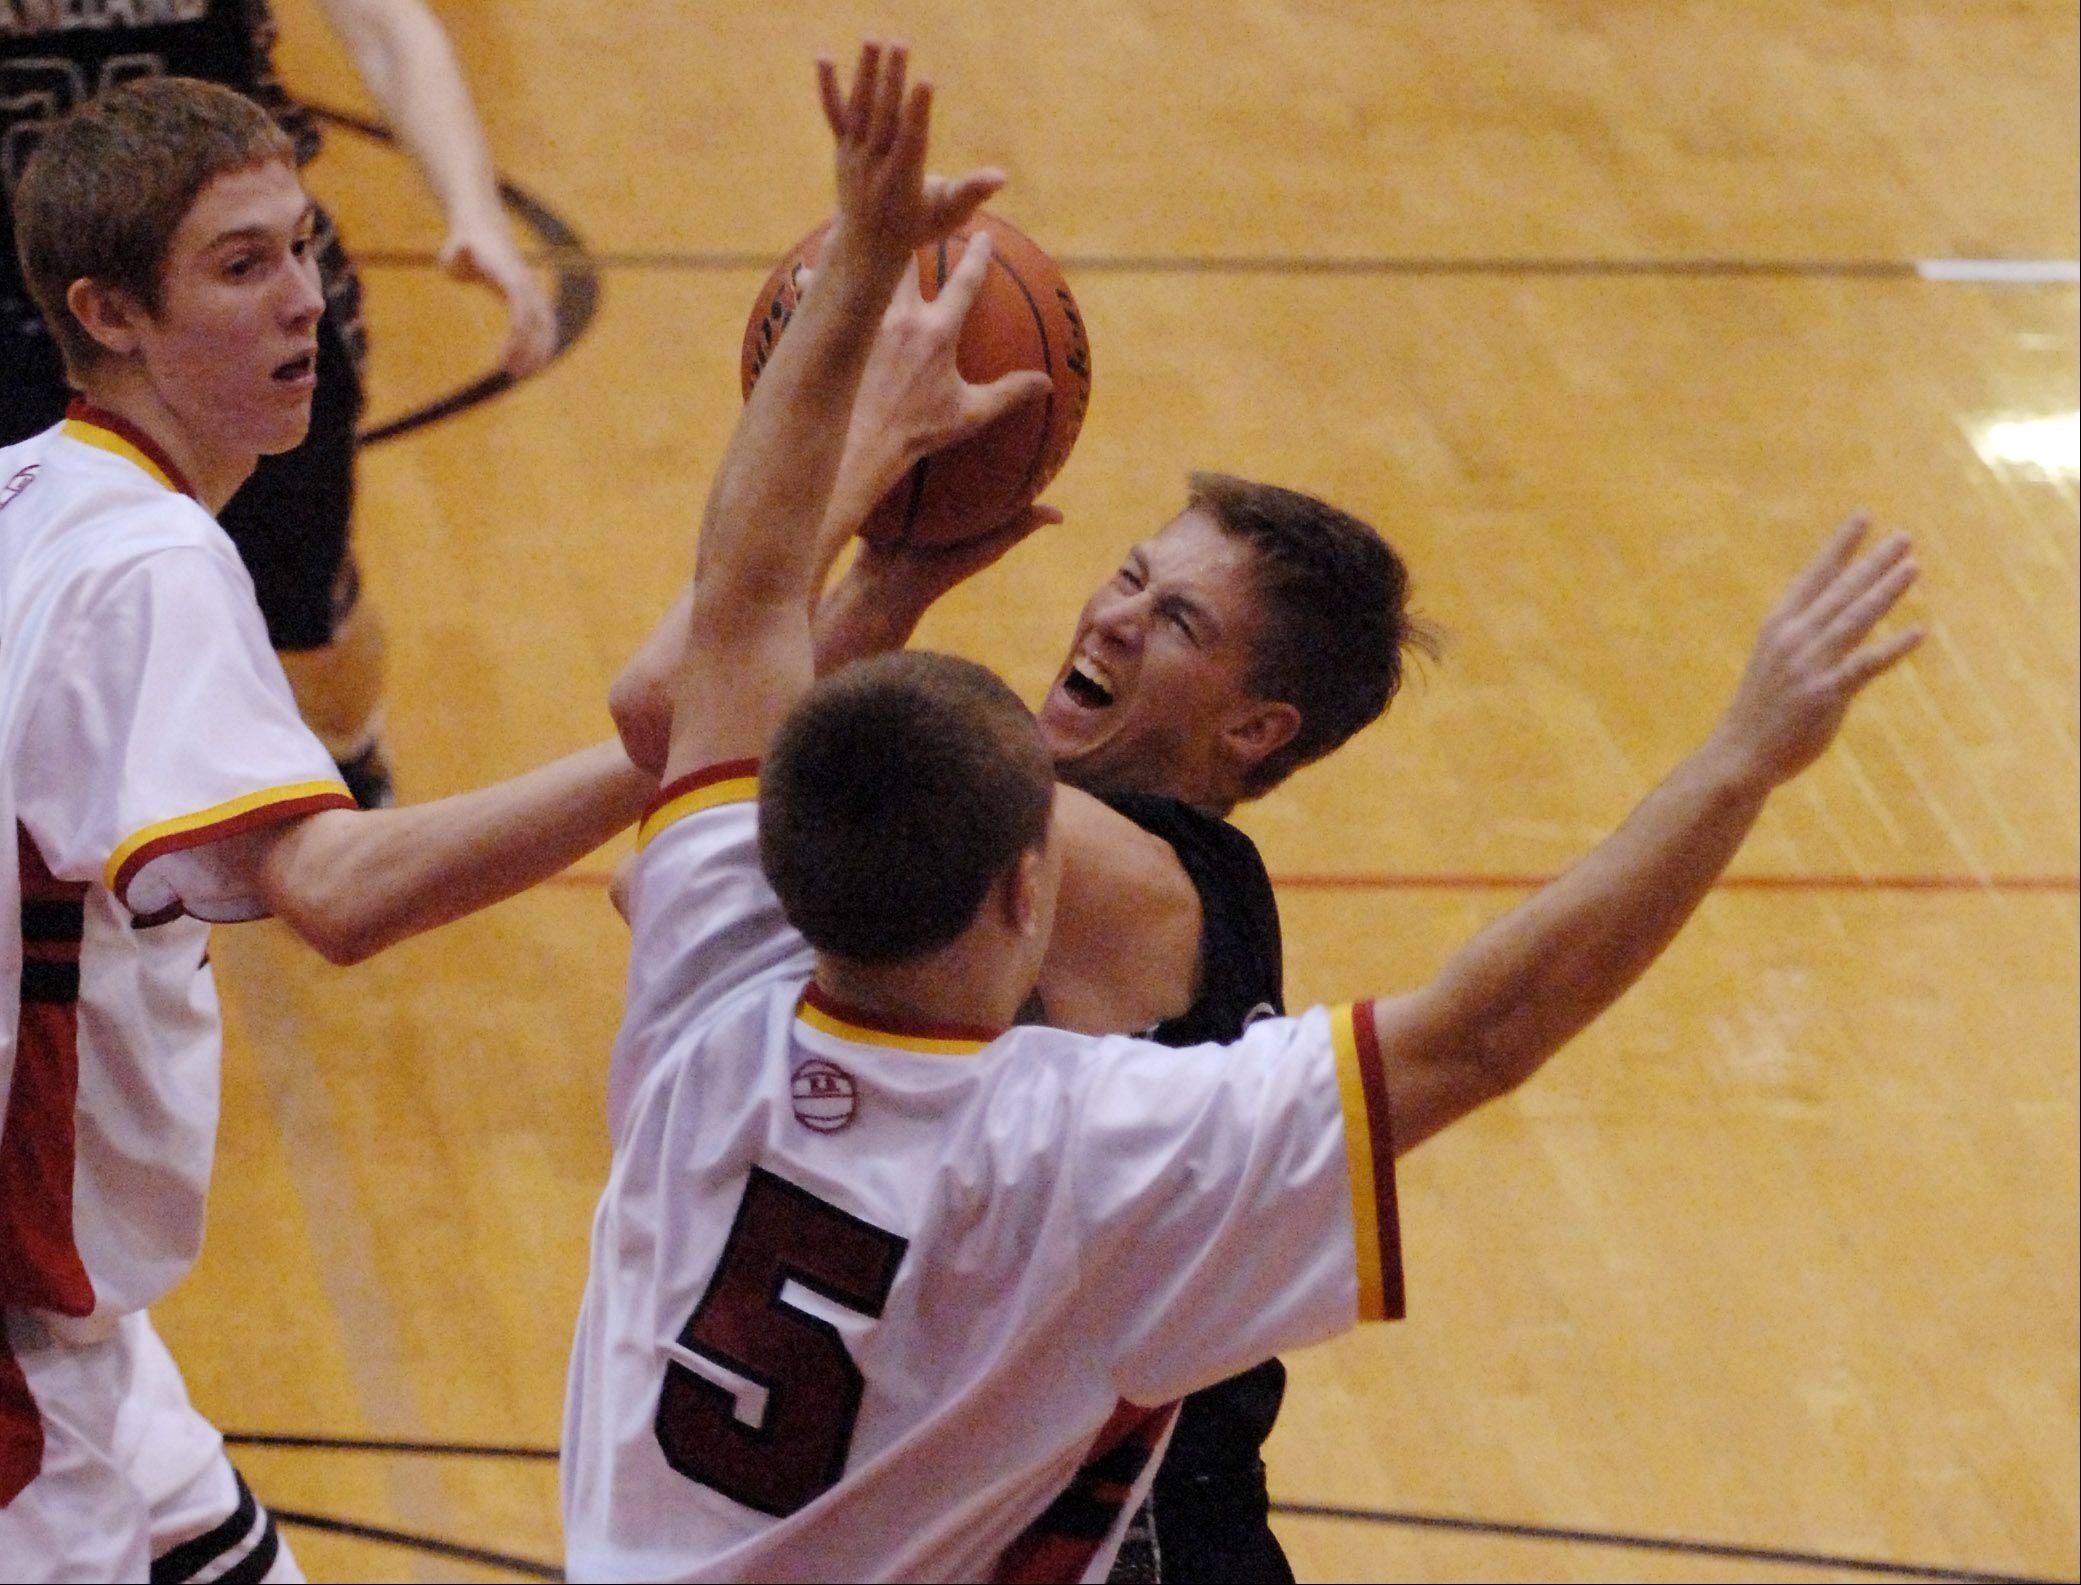 Kaneland's Dan Miller fights through a double team to get up a shot against Batavia during Wednesday's game at Batavia.